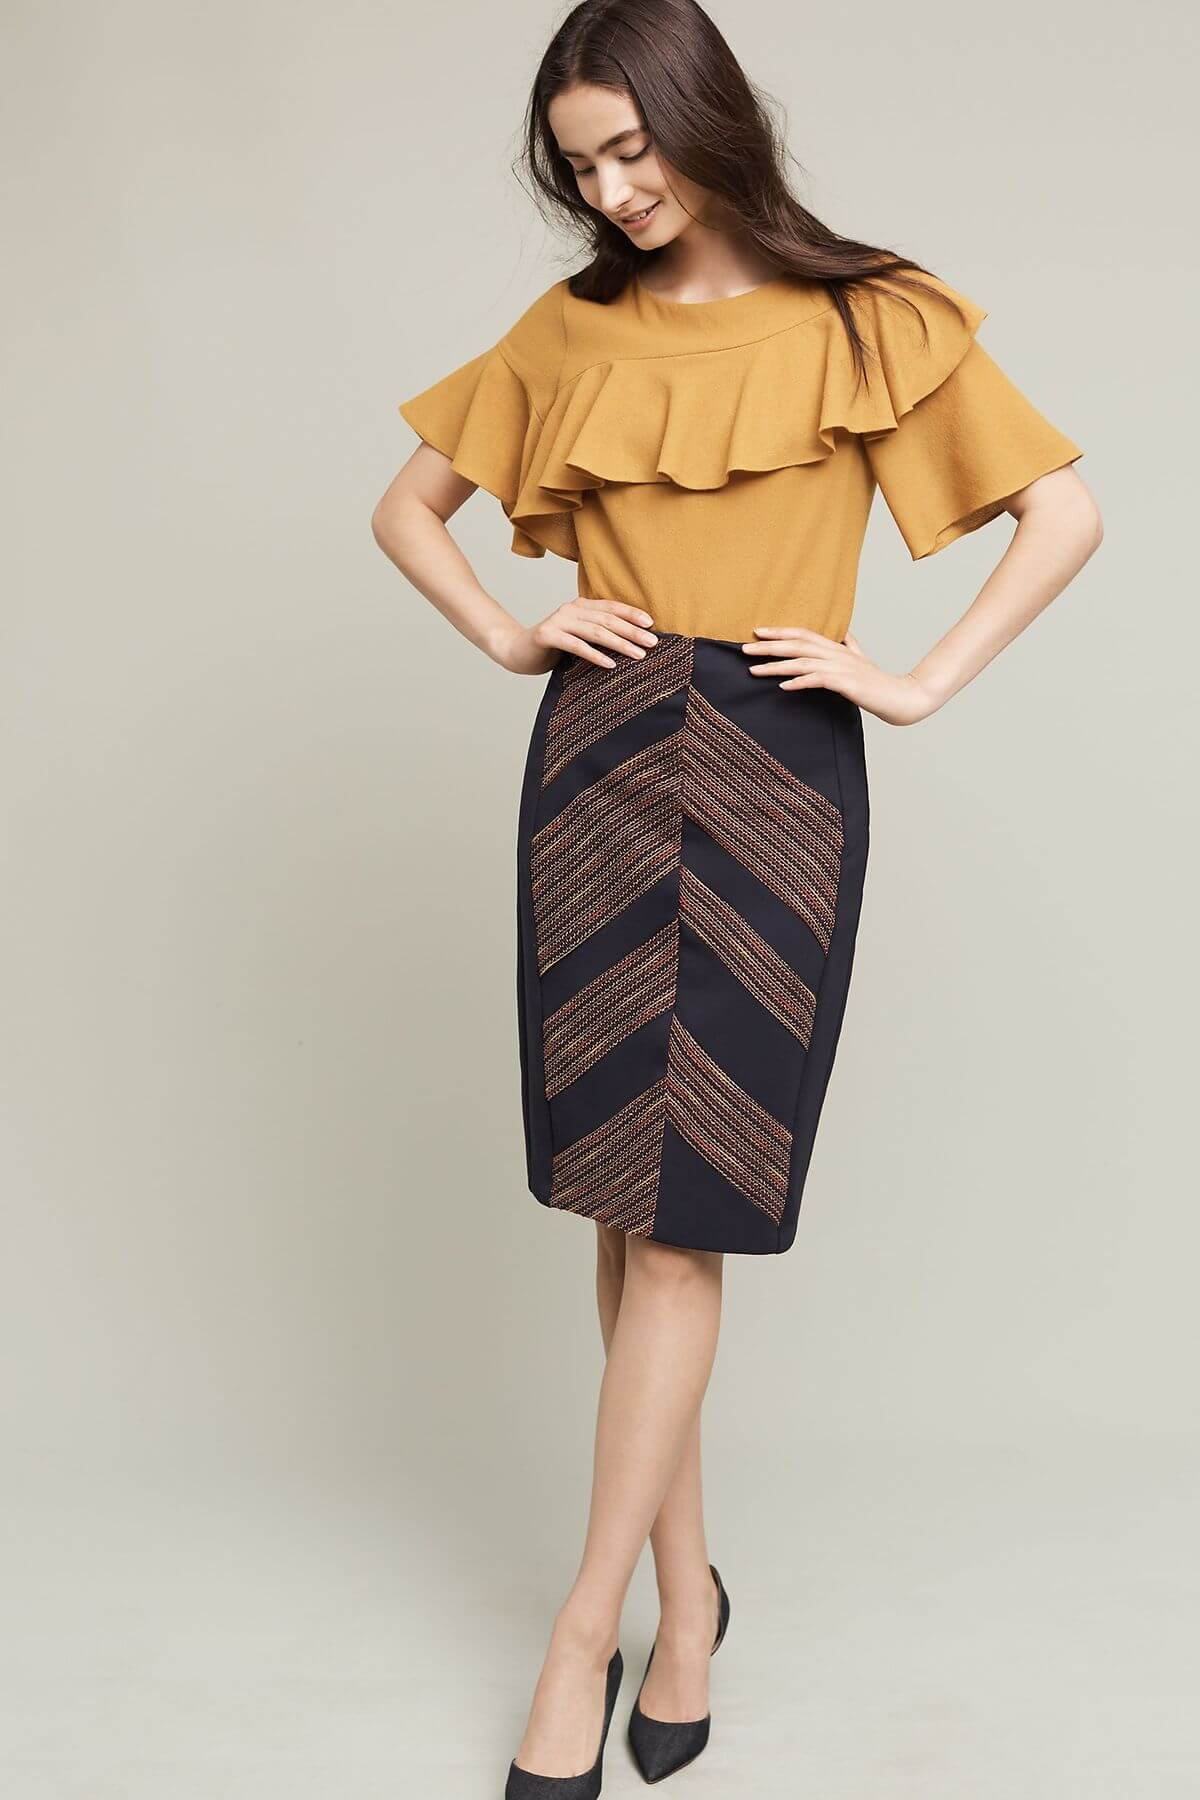 Eva Franco Skirt Western Pencil Skirt